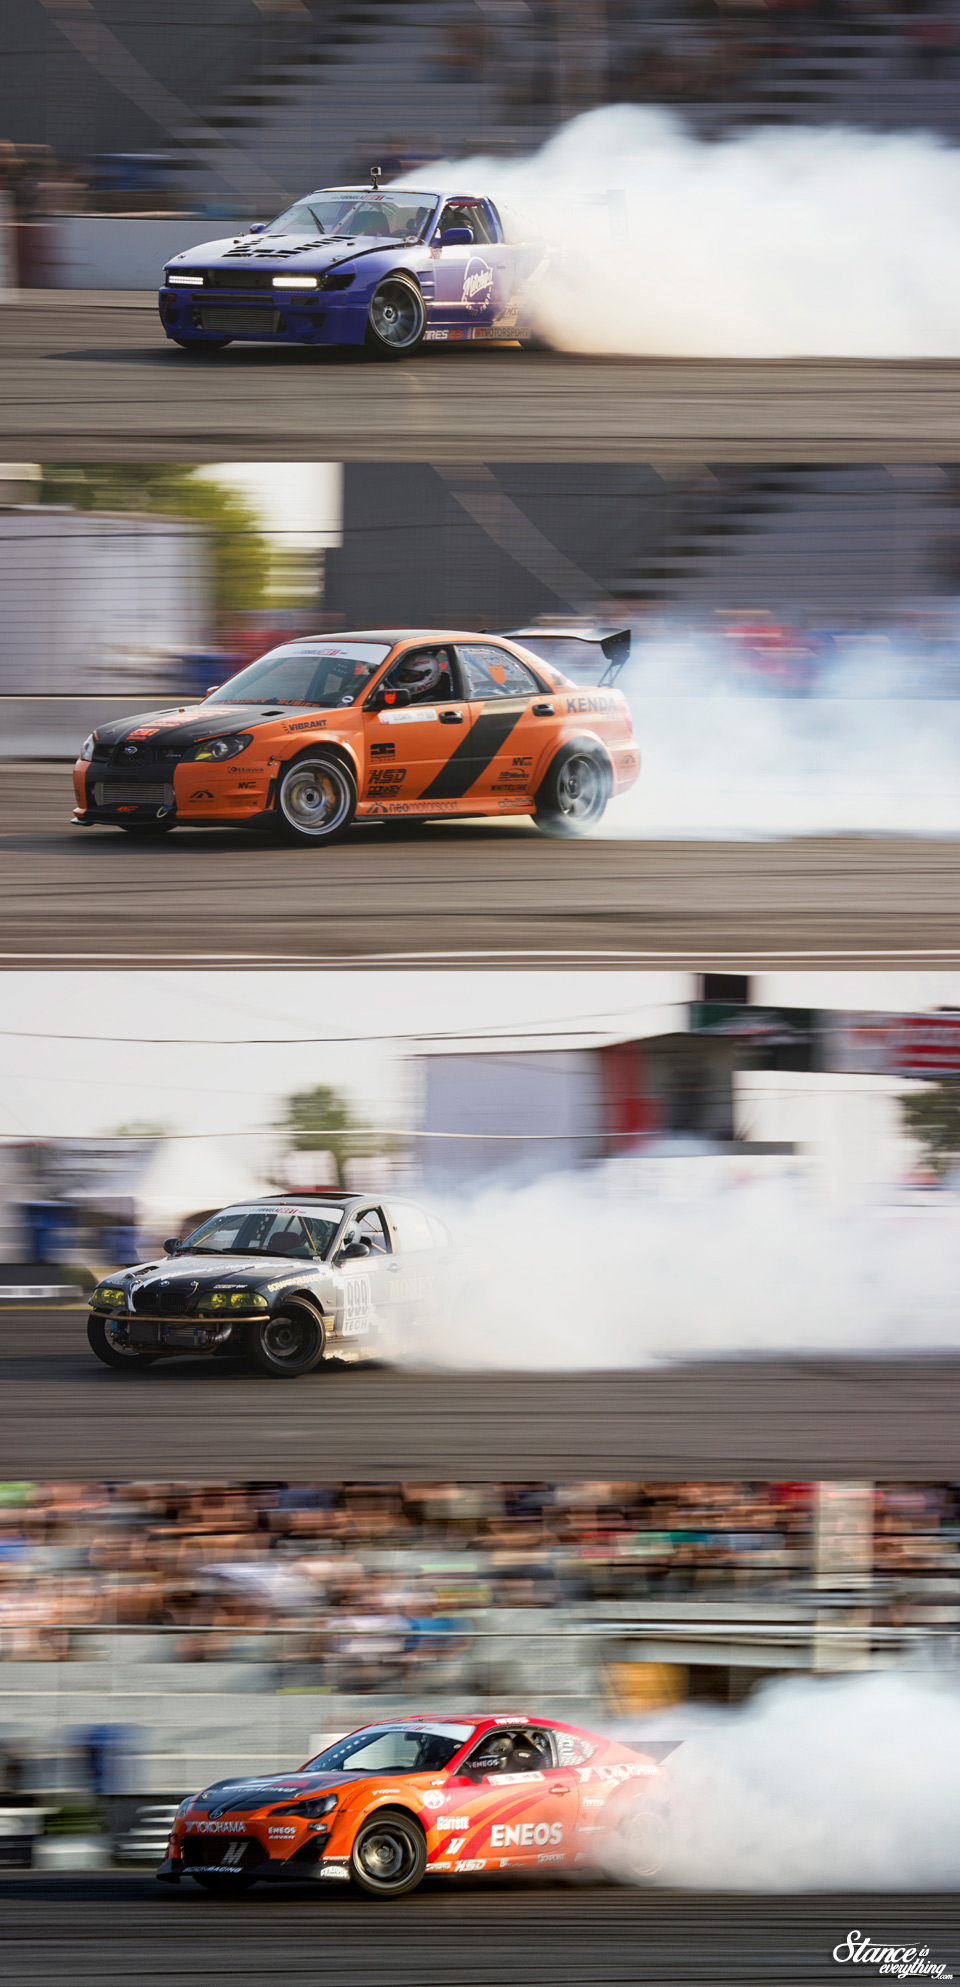 2015-formula-drift-world-round-quebec-qualifying-marin-riley-steve-pat